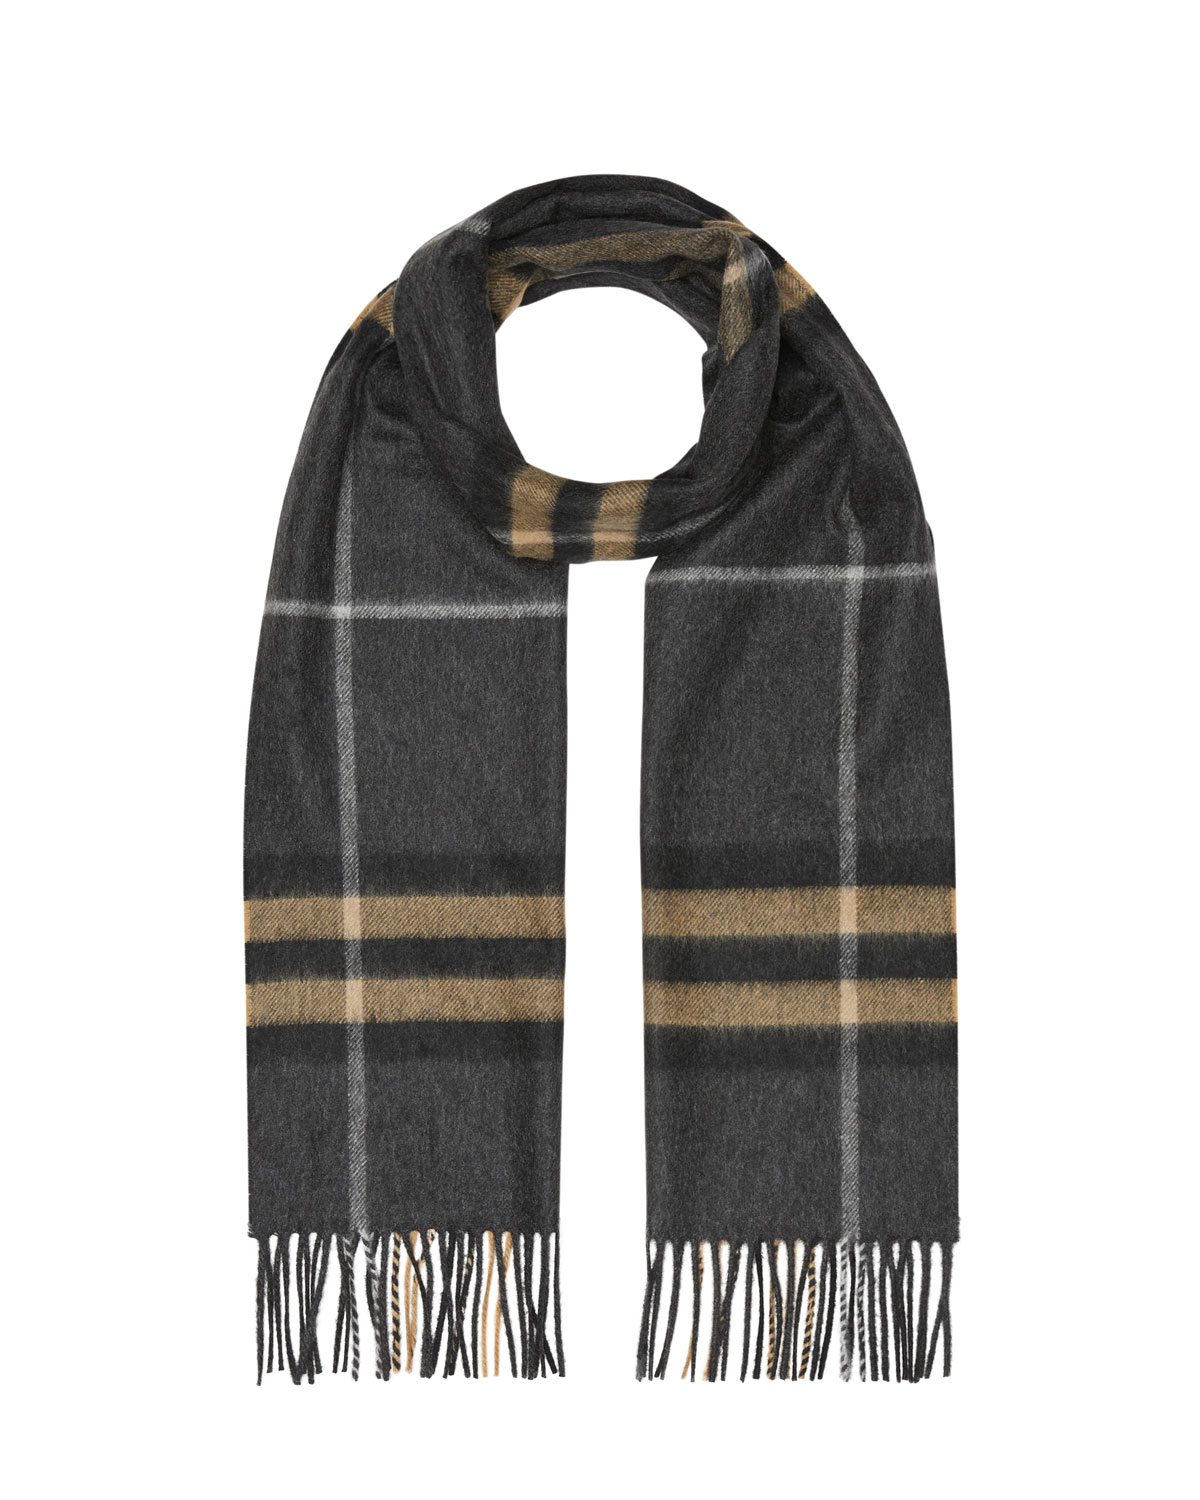 6a7a532f0 burberry cashmere scarves scarves for men - Buy best men's burberry cashmere  scarves scarves on Cools.com Shop